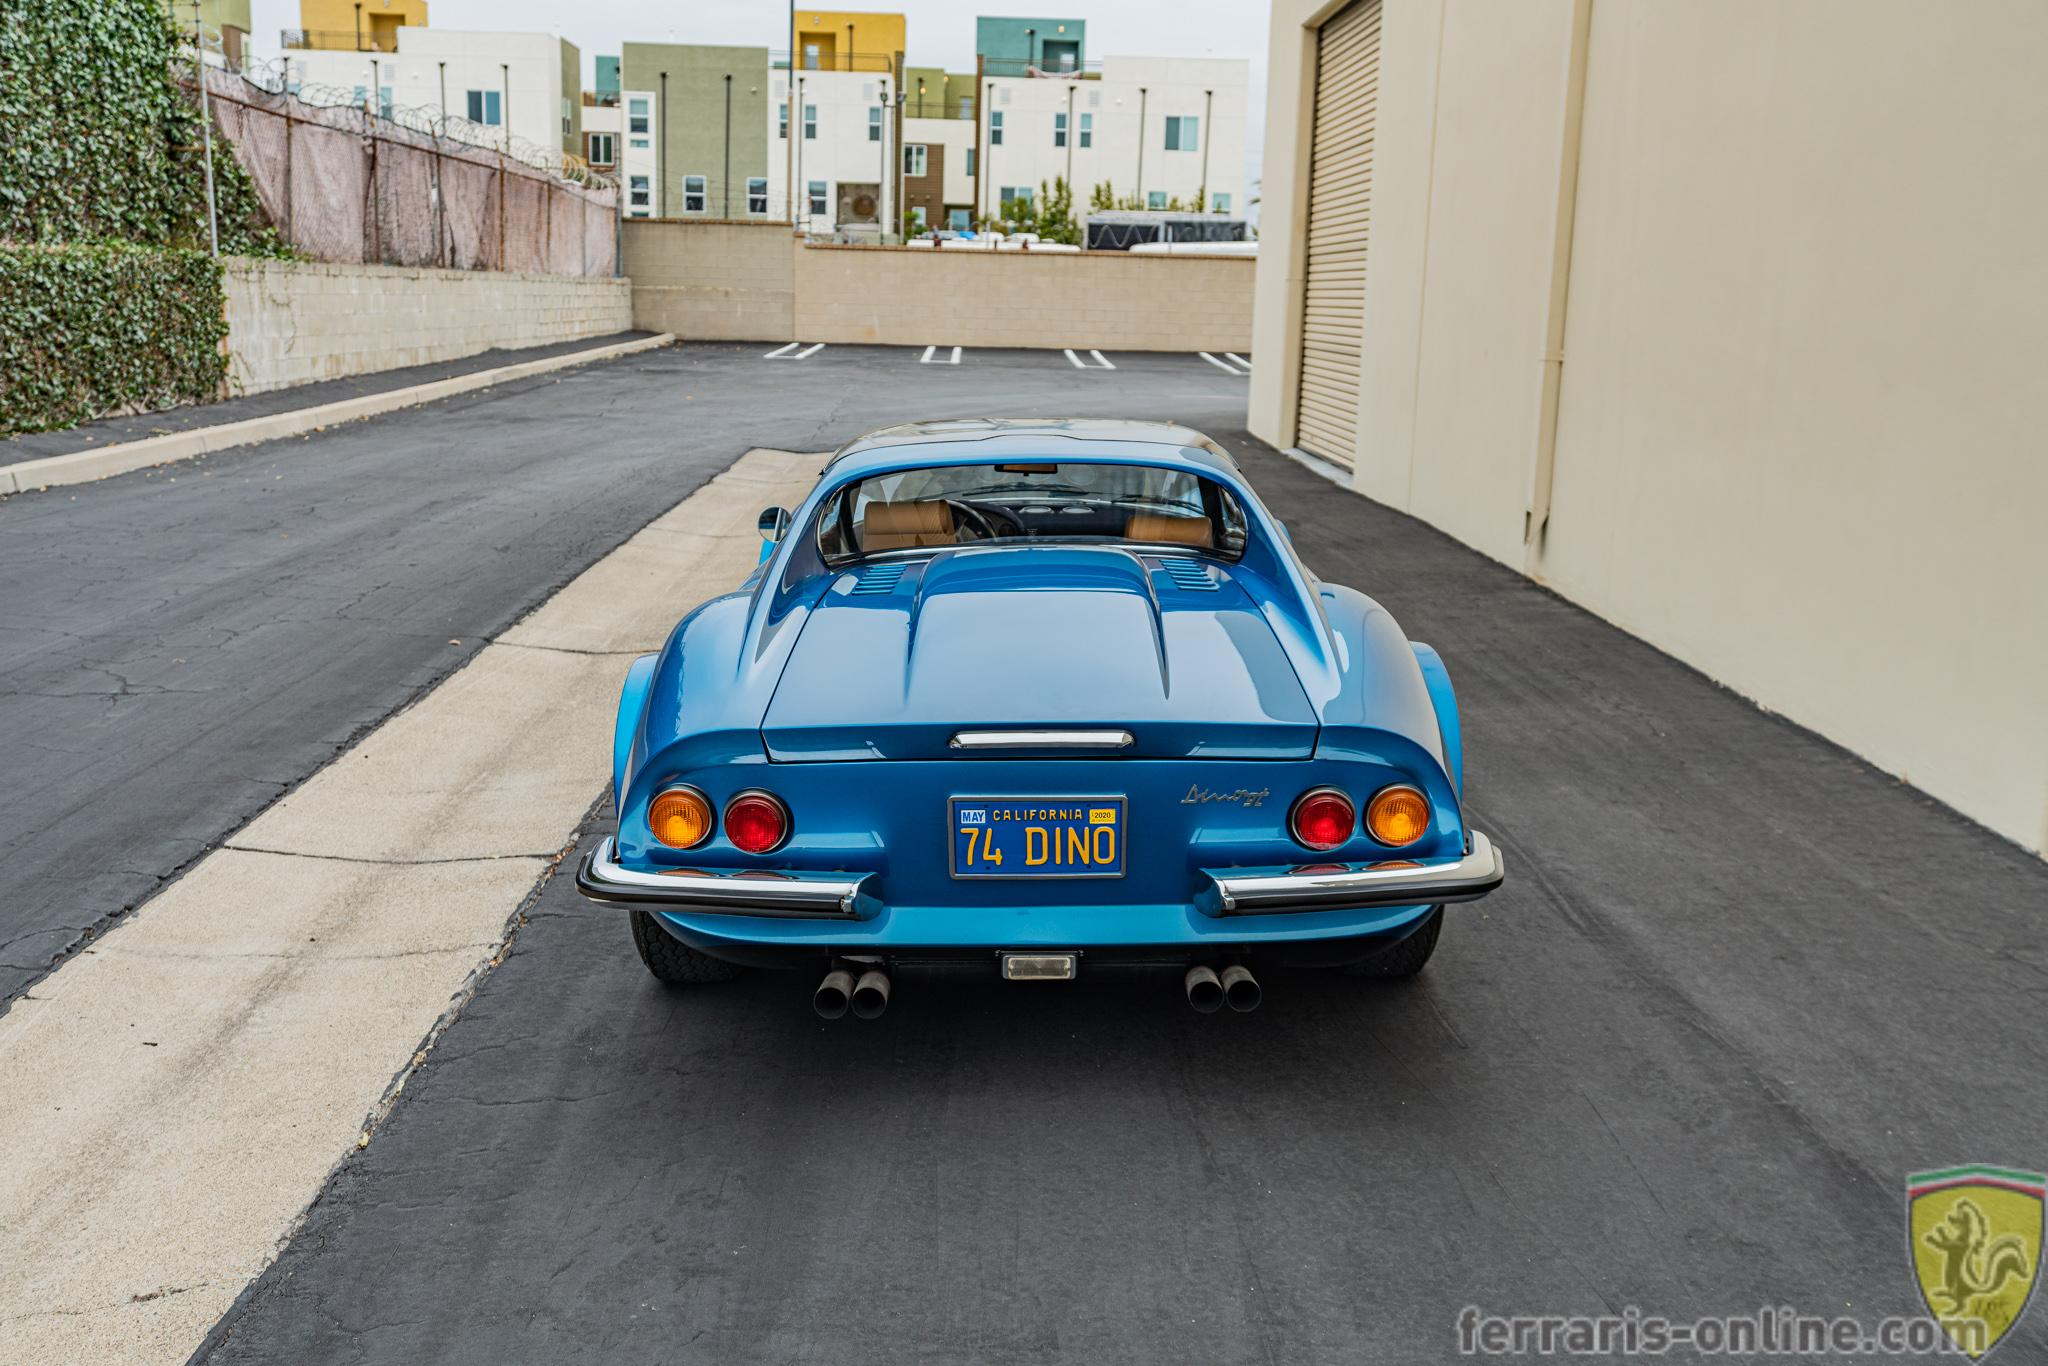 "Ferrari 246 GTS Dino ""chairs and flares"" #07836"